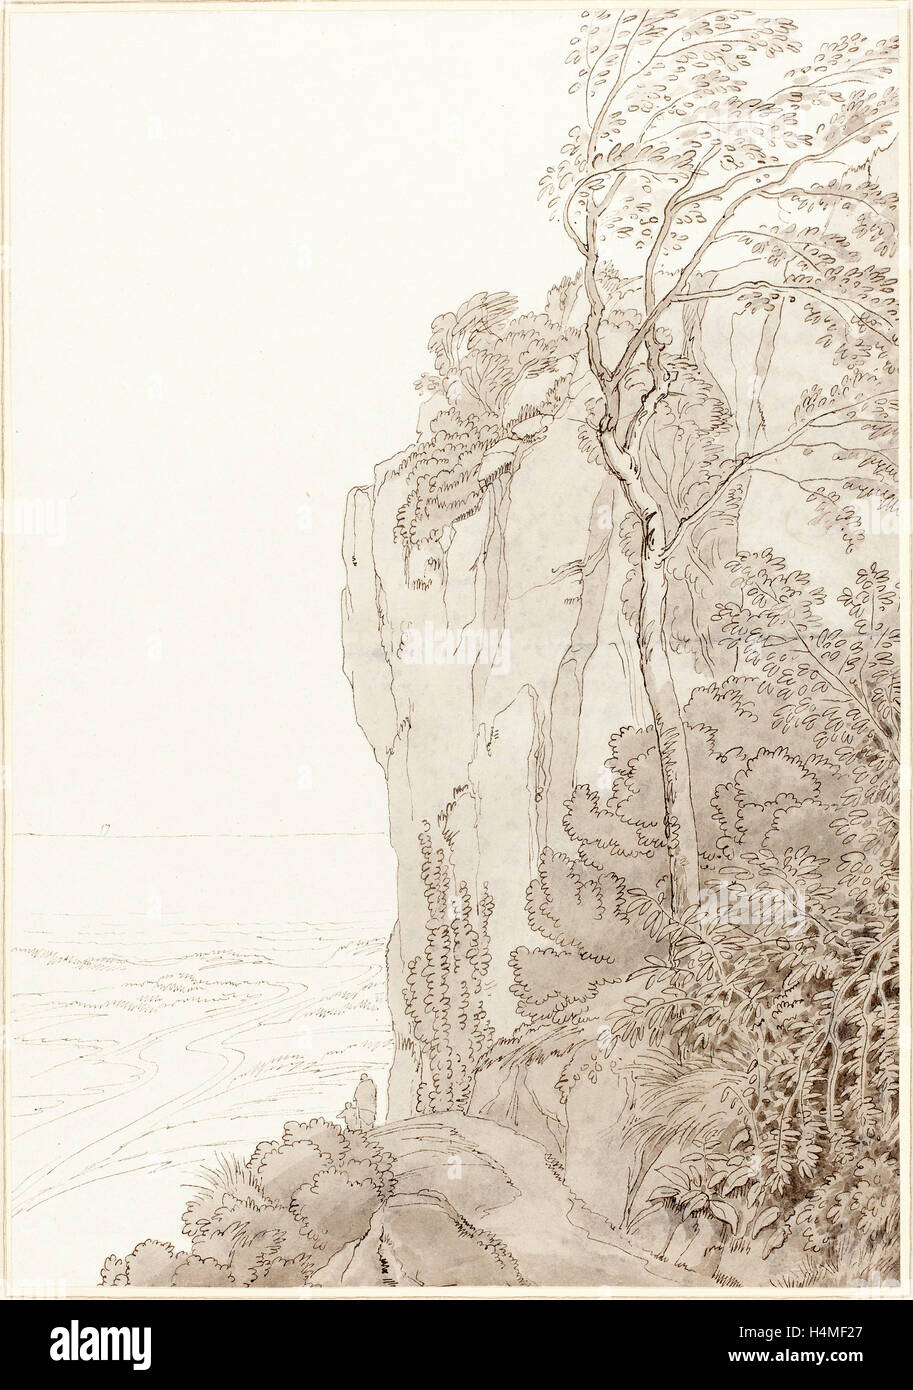 John White Abbott (British, 1763 - 1851), Sheer Cliffs above a Coastal Road, 1810, pen and black ink with gray wash - Stock Image